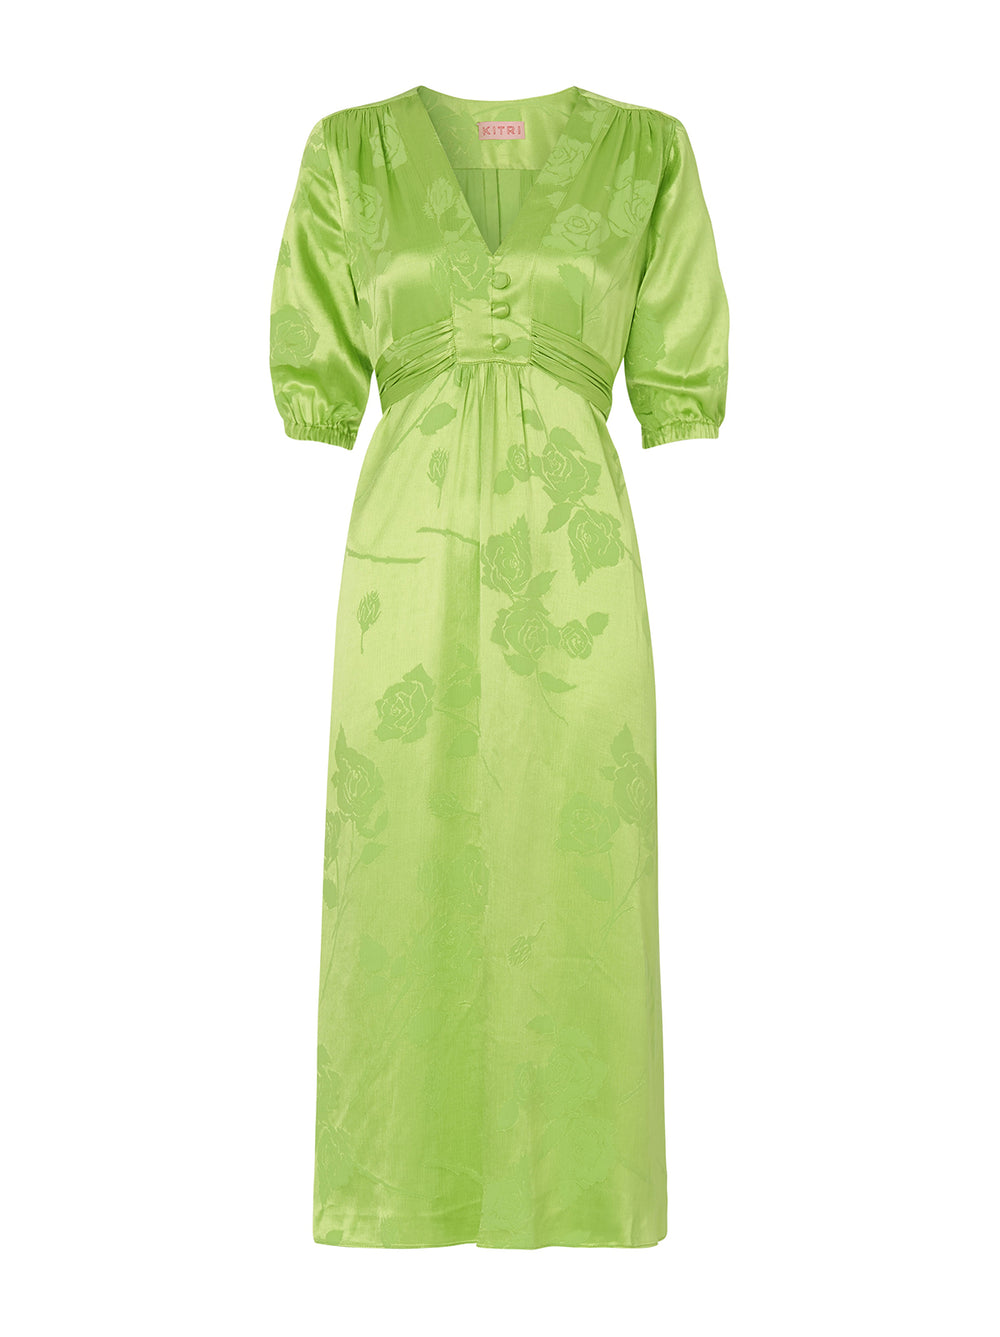 Minka Lime Jacquard Tea Dress by KITRI Studio